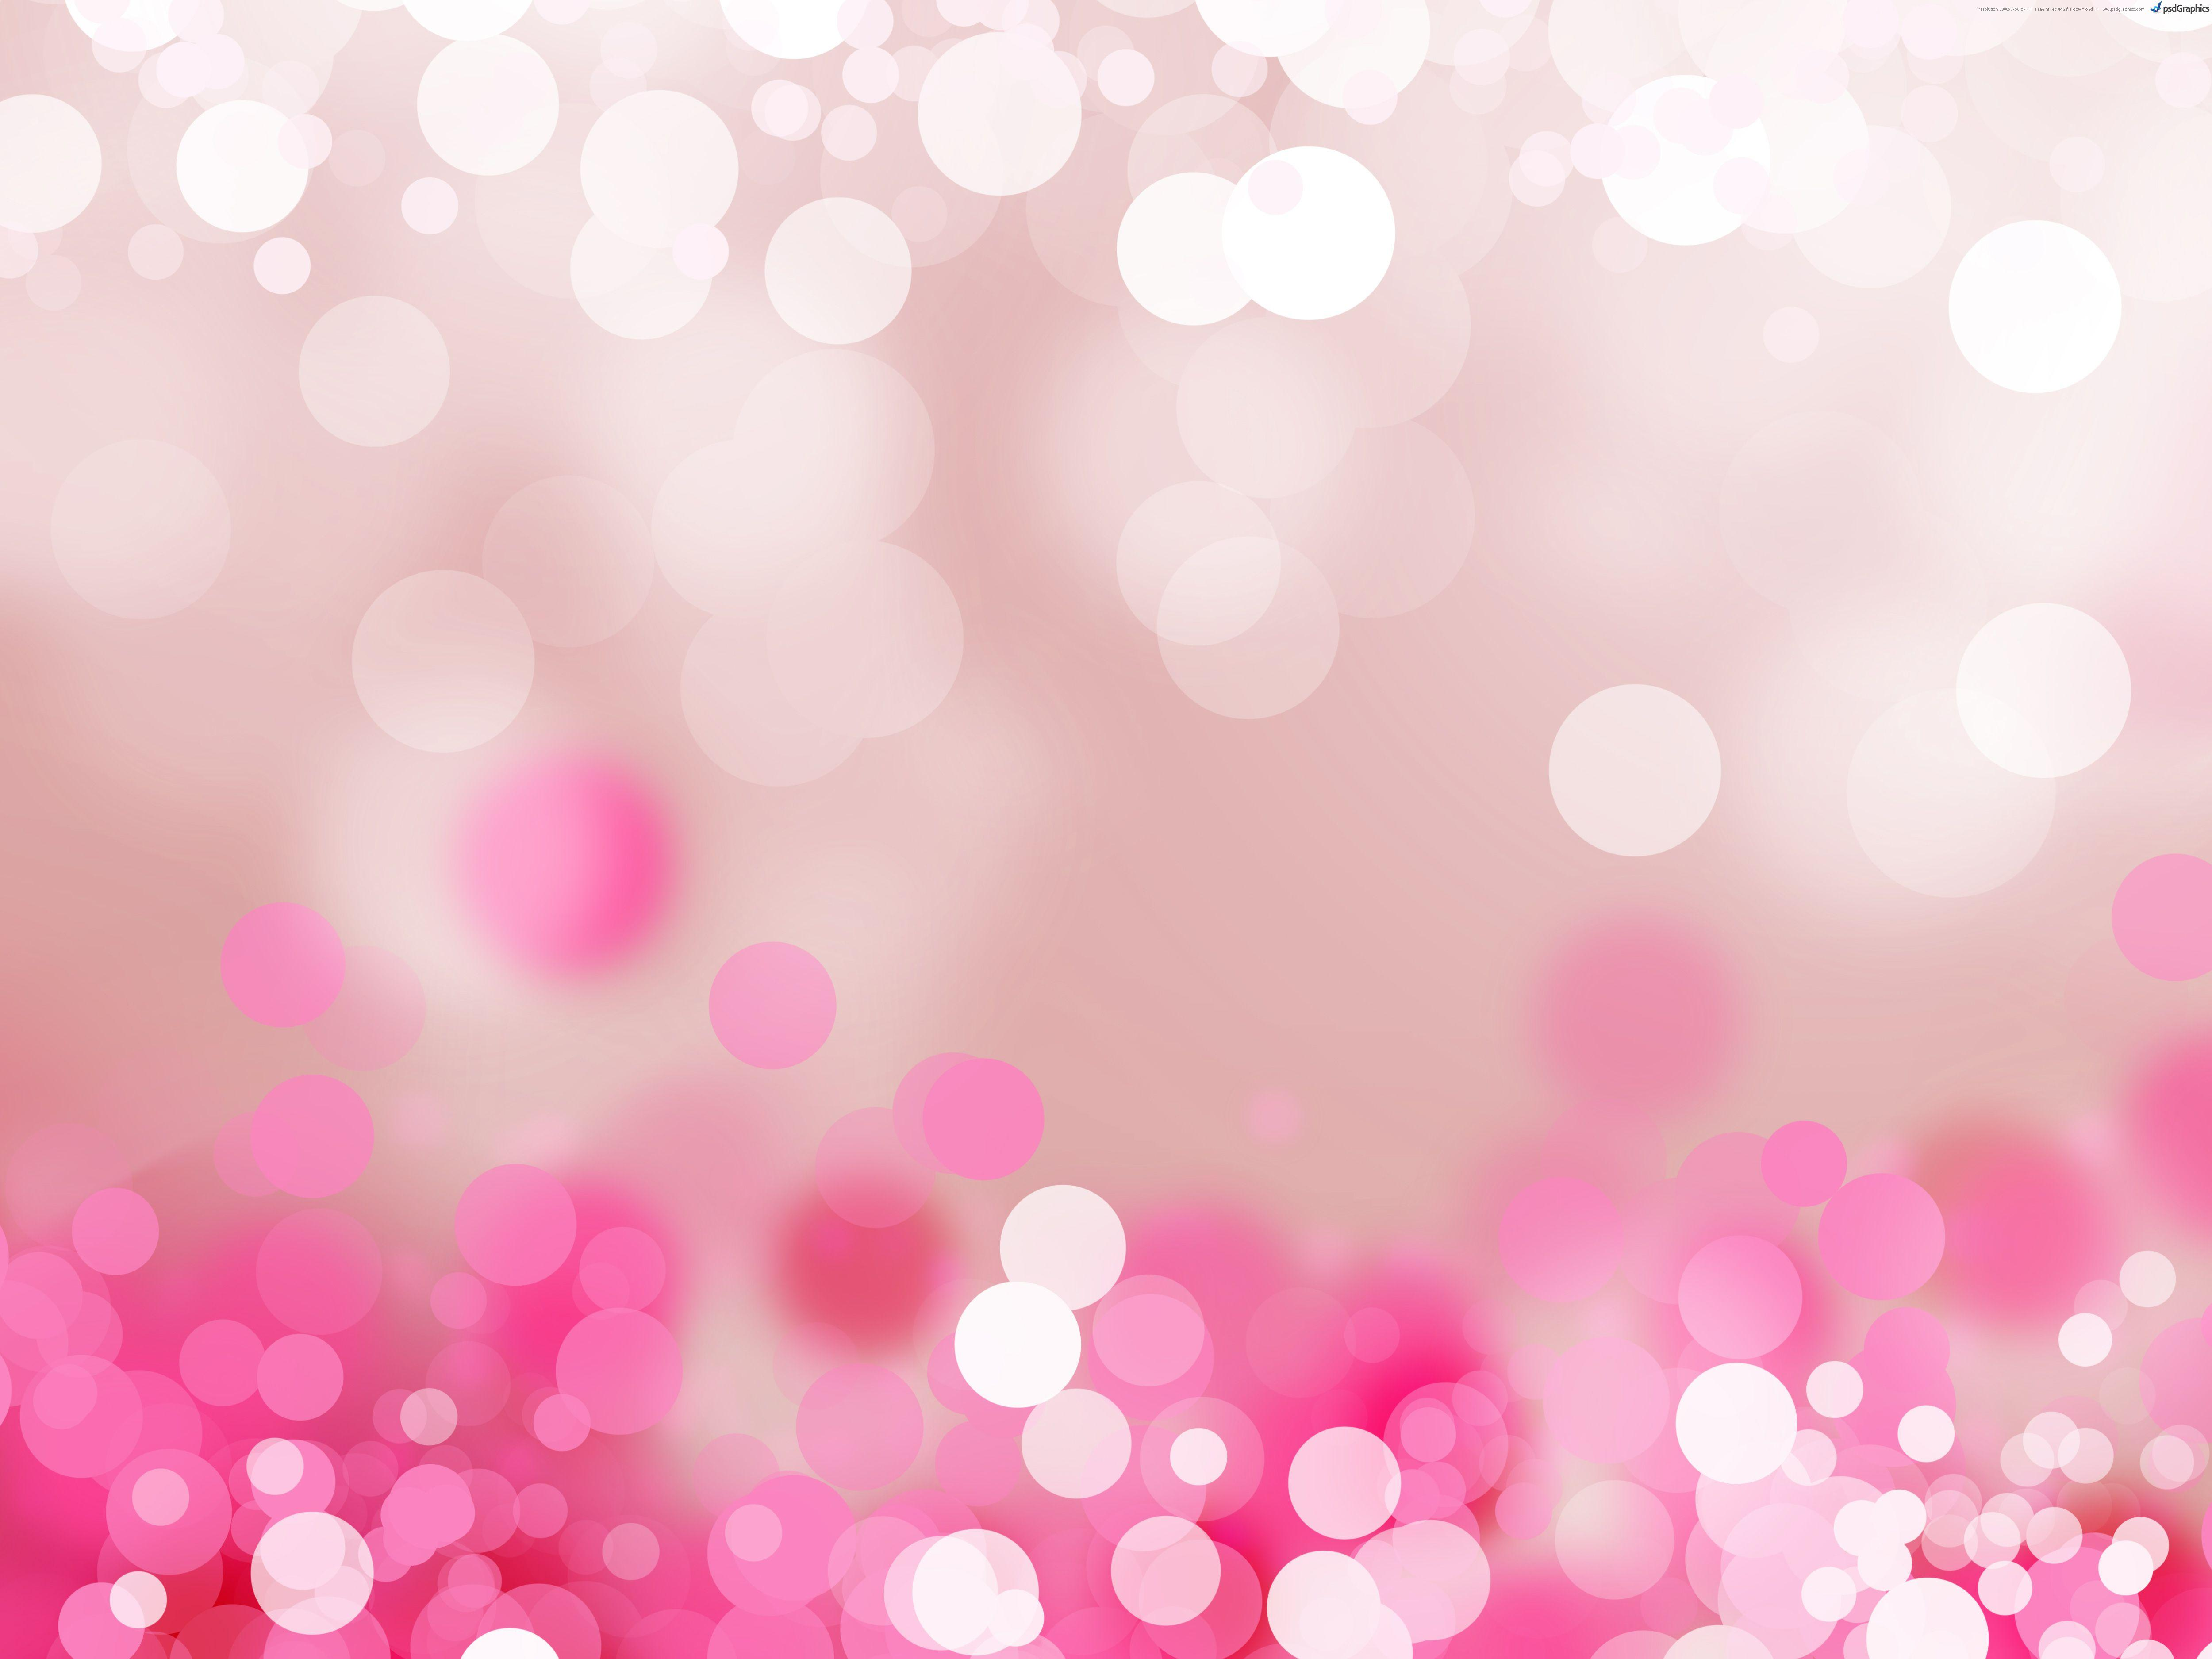 Light Pink Wallpapers - Wallpaper Cave